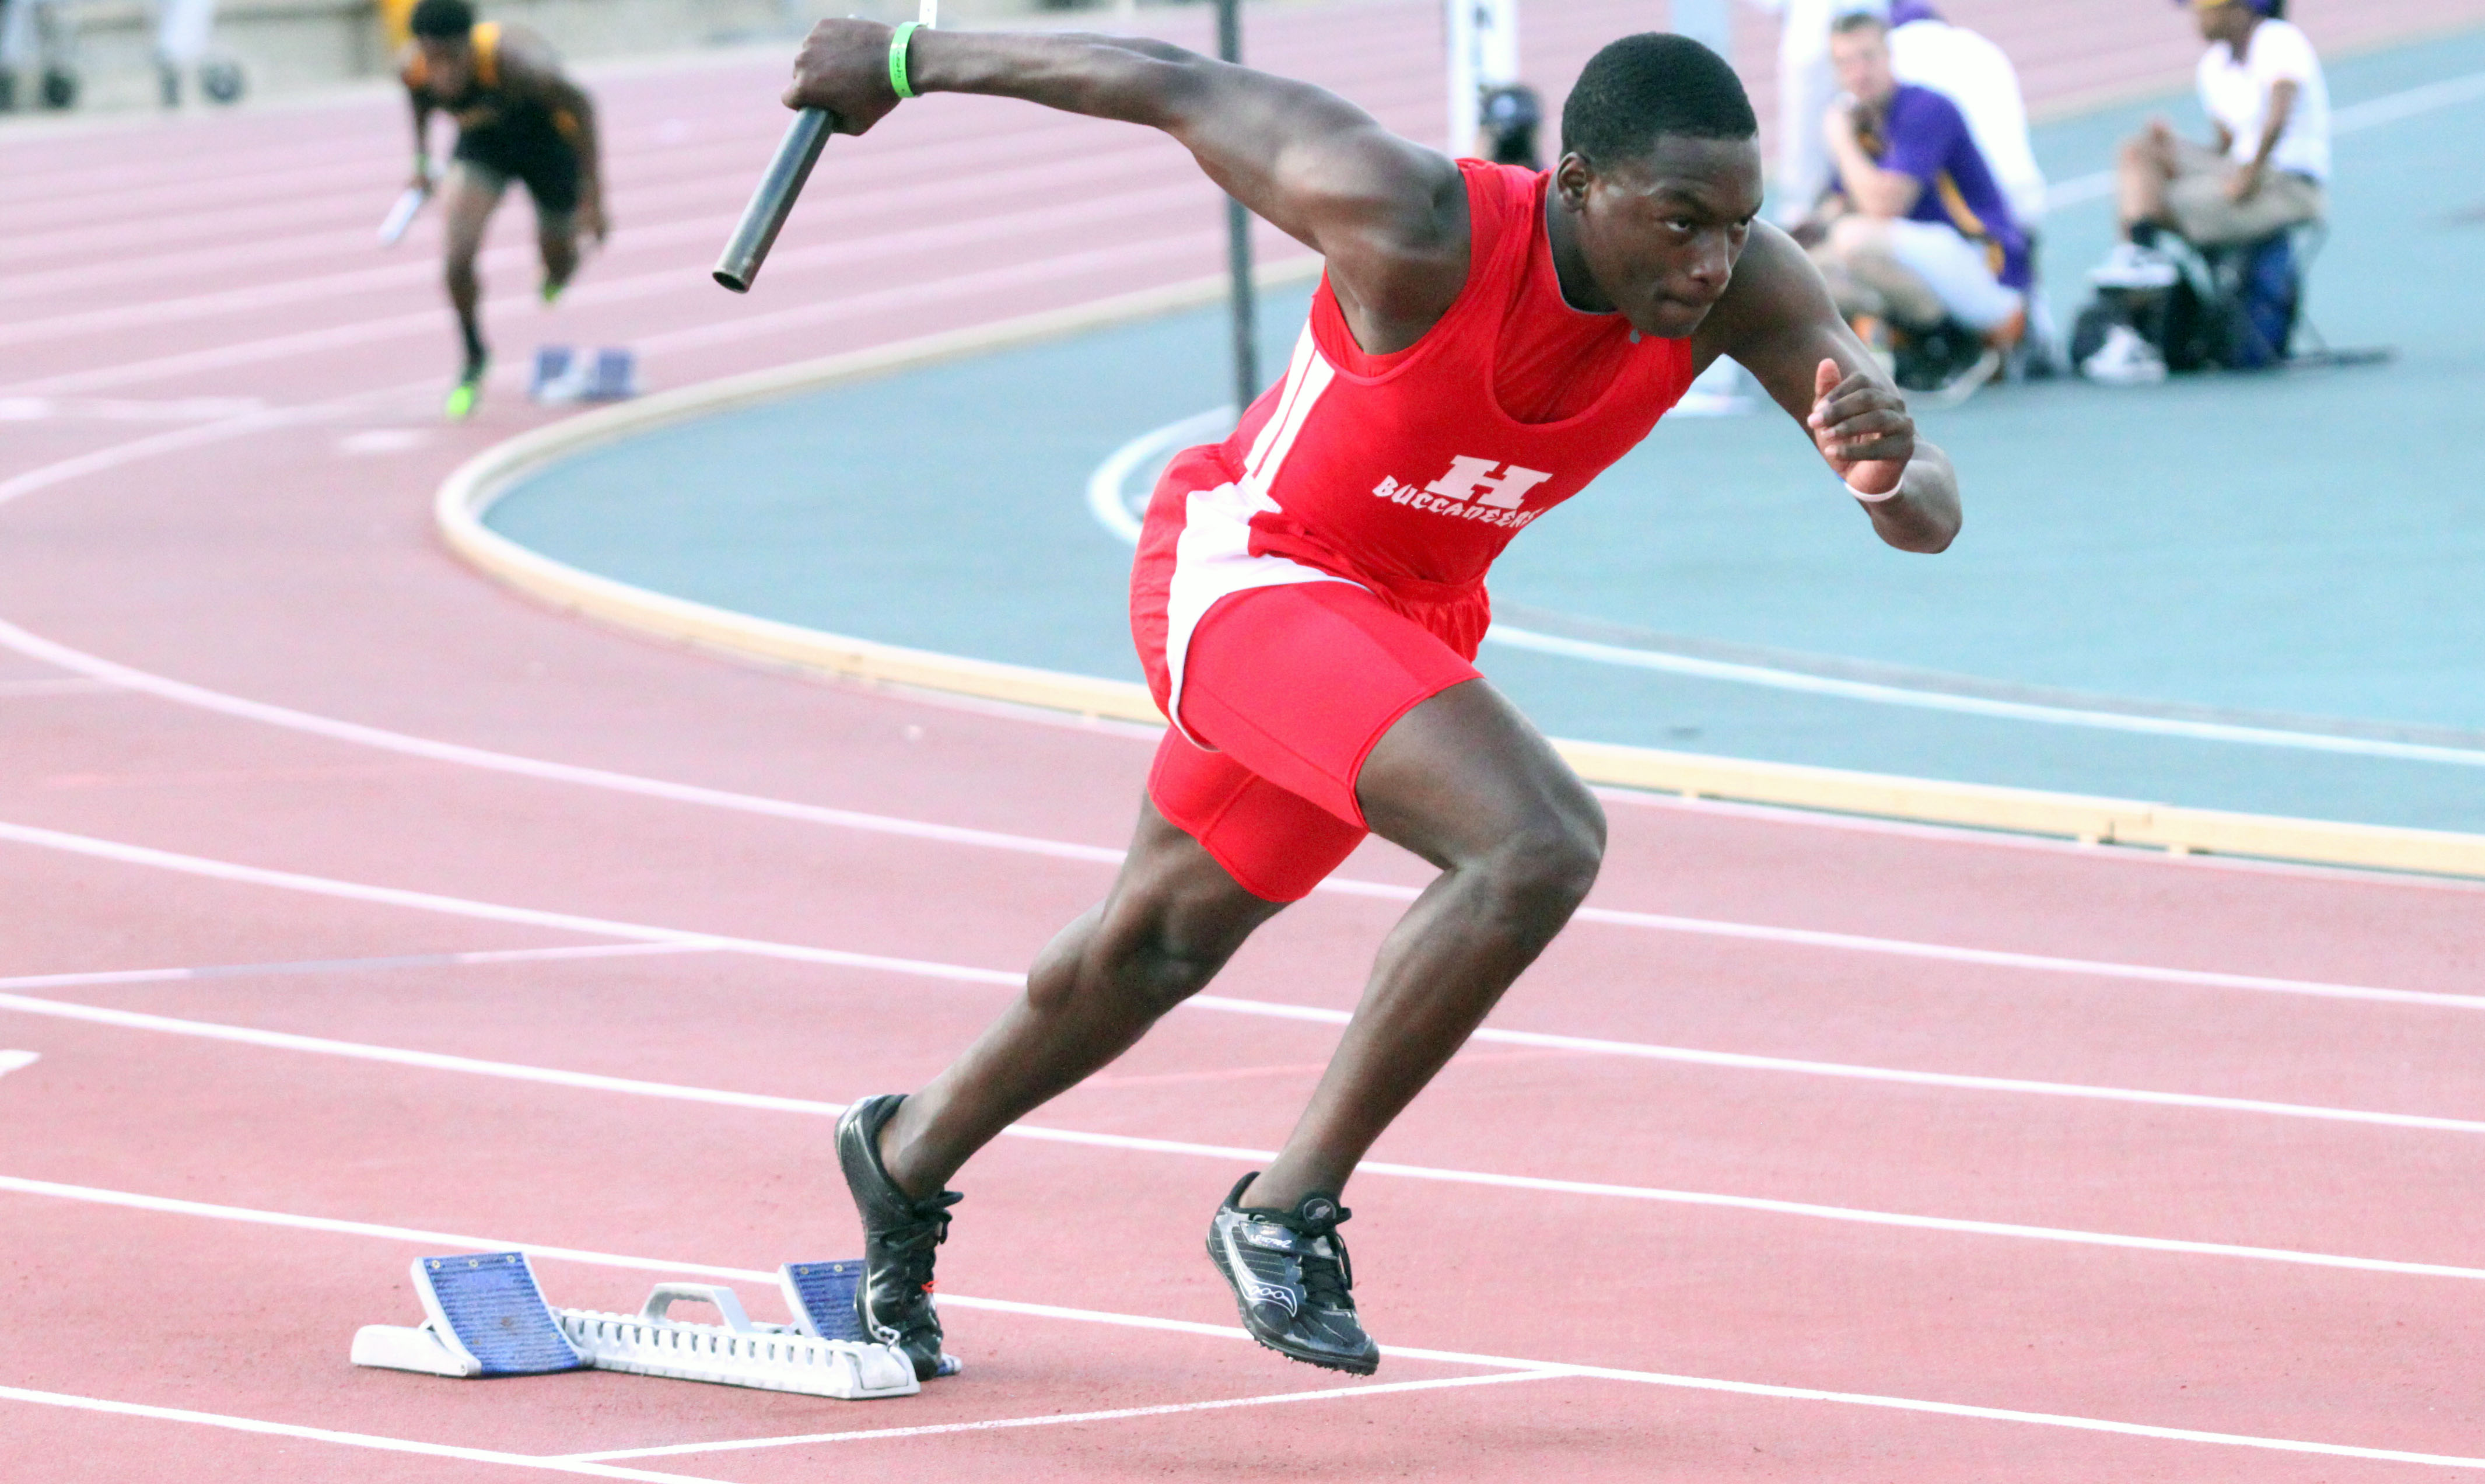 bossier parish track meet clipart